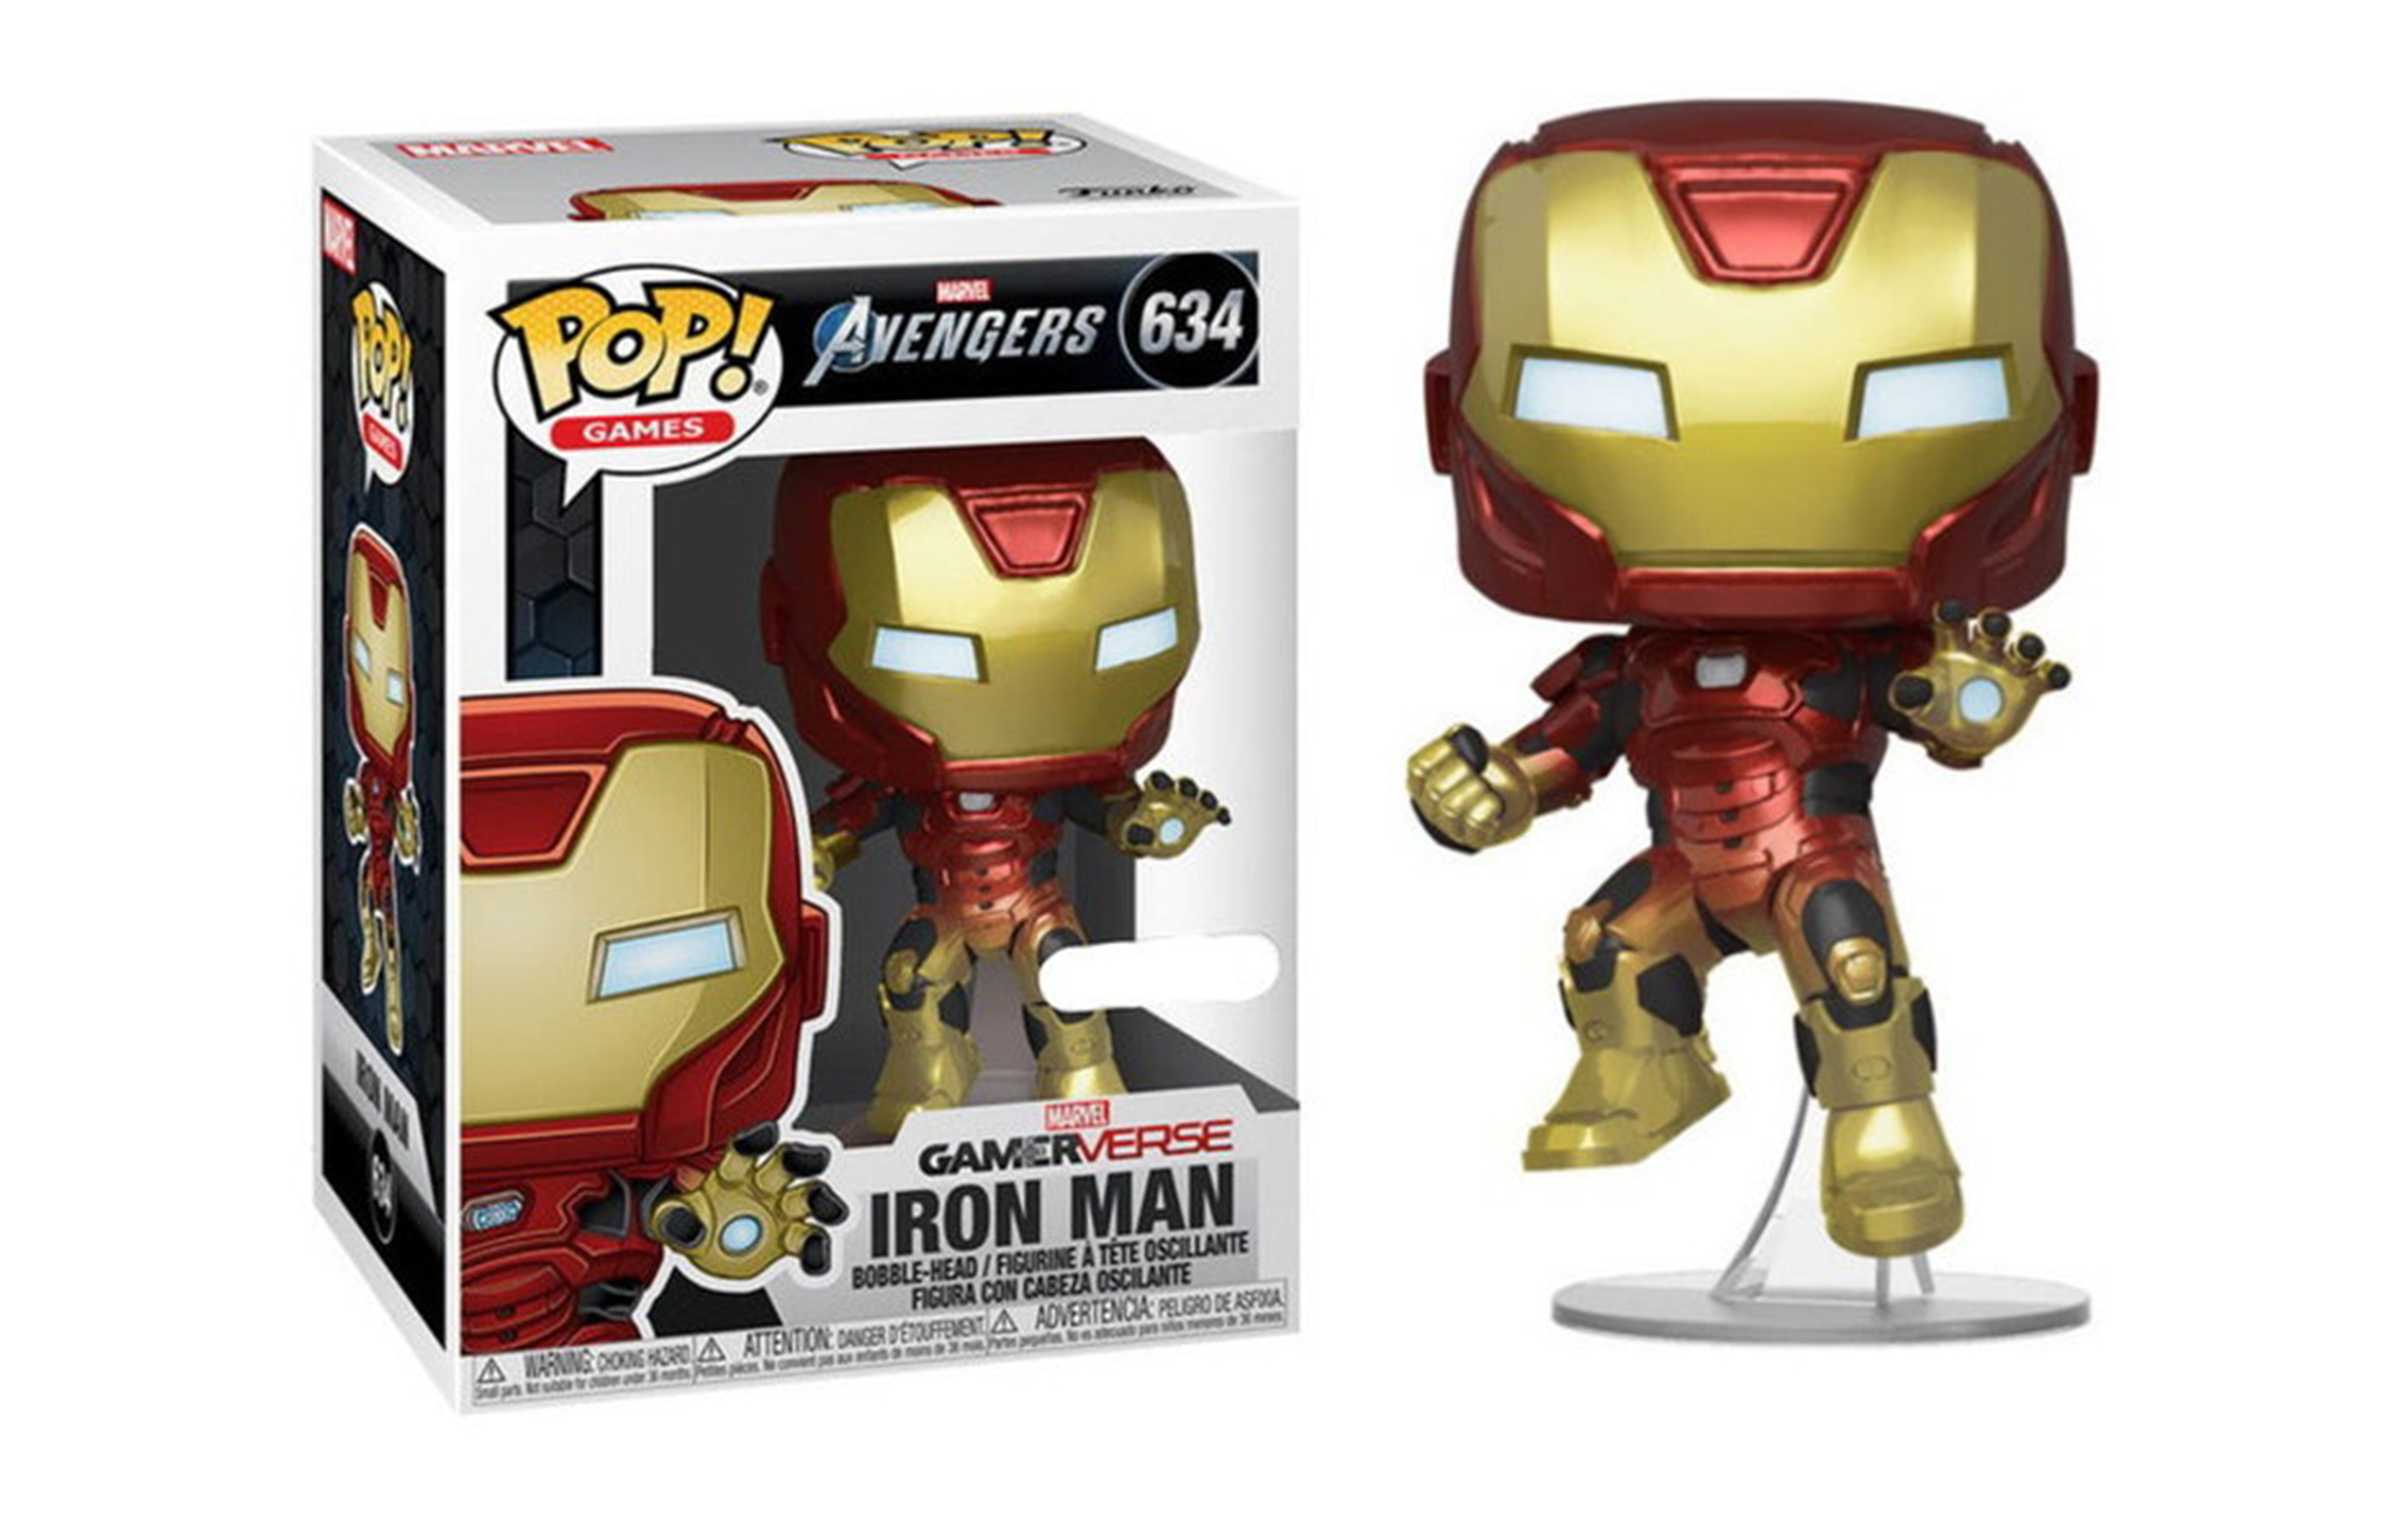 Marvel Avengers Gamerverse Iron Man 634 Funko POP Vinyl Figure